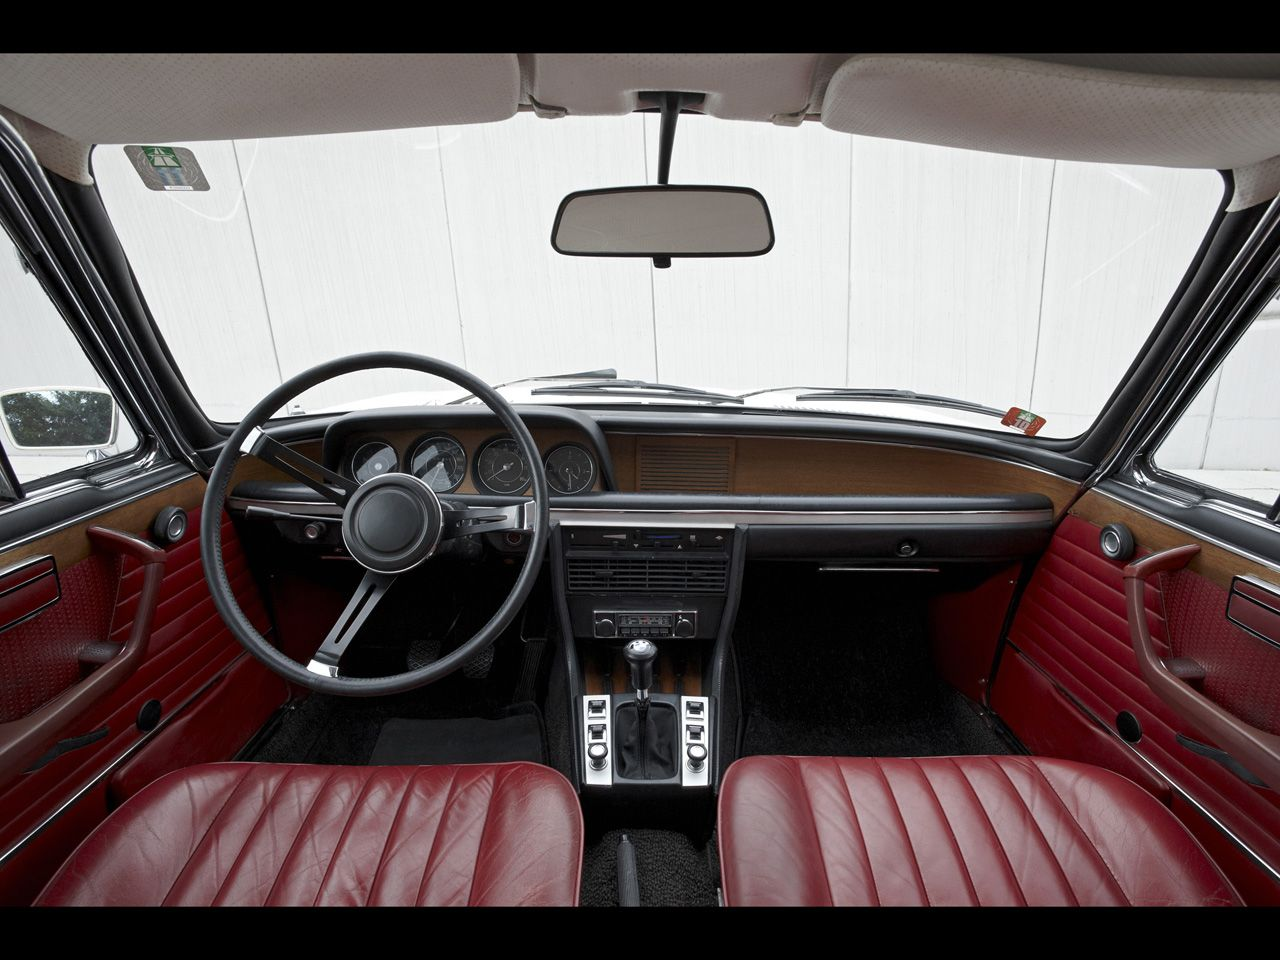 1973 Bmw 3 0 Csi Dashboard 1280x960 Wallpaper Bmw E9 Bmw